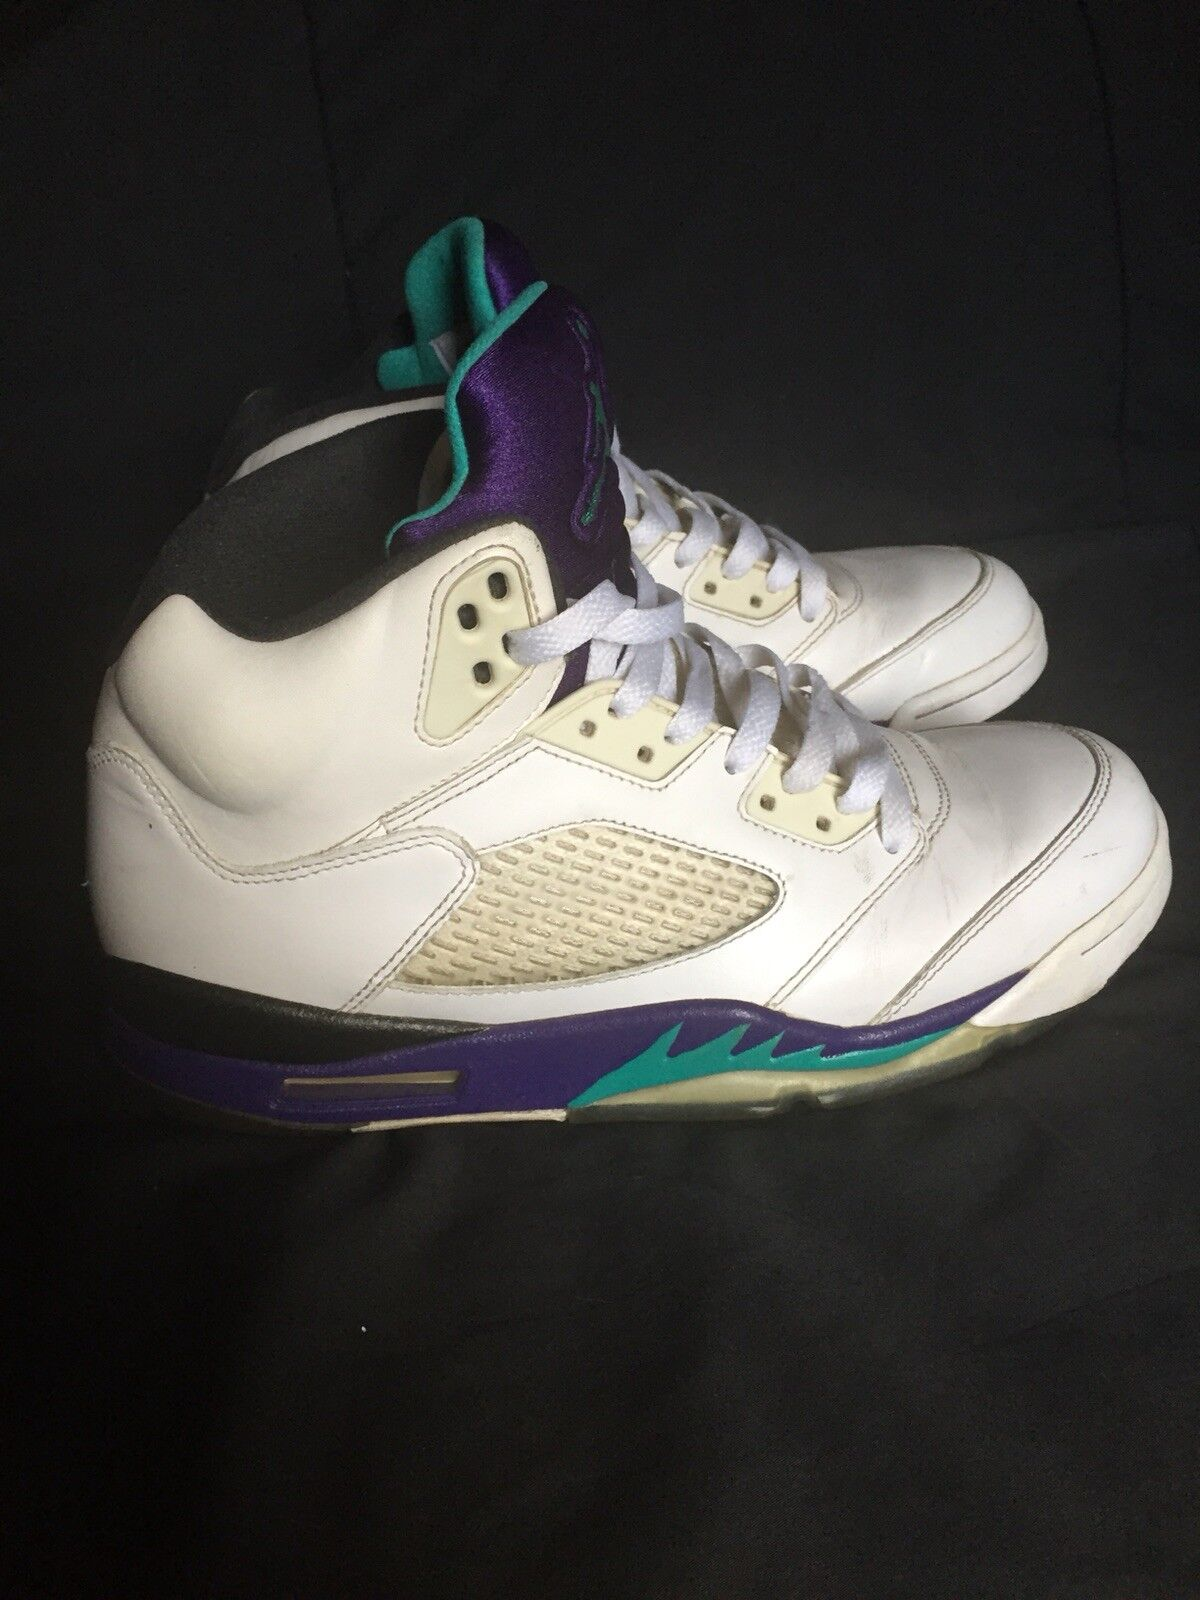 Air Jordan 5 V Retro Grape White Men's Comfortable New shoes for men and women, limited time discount